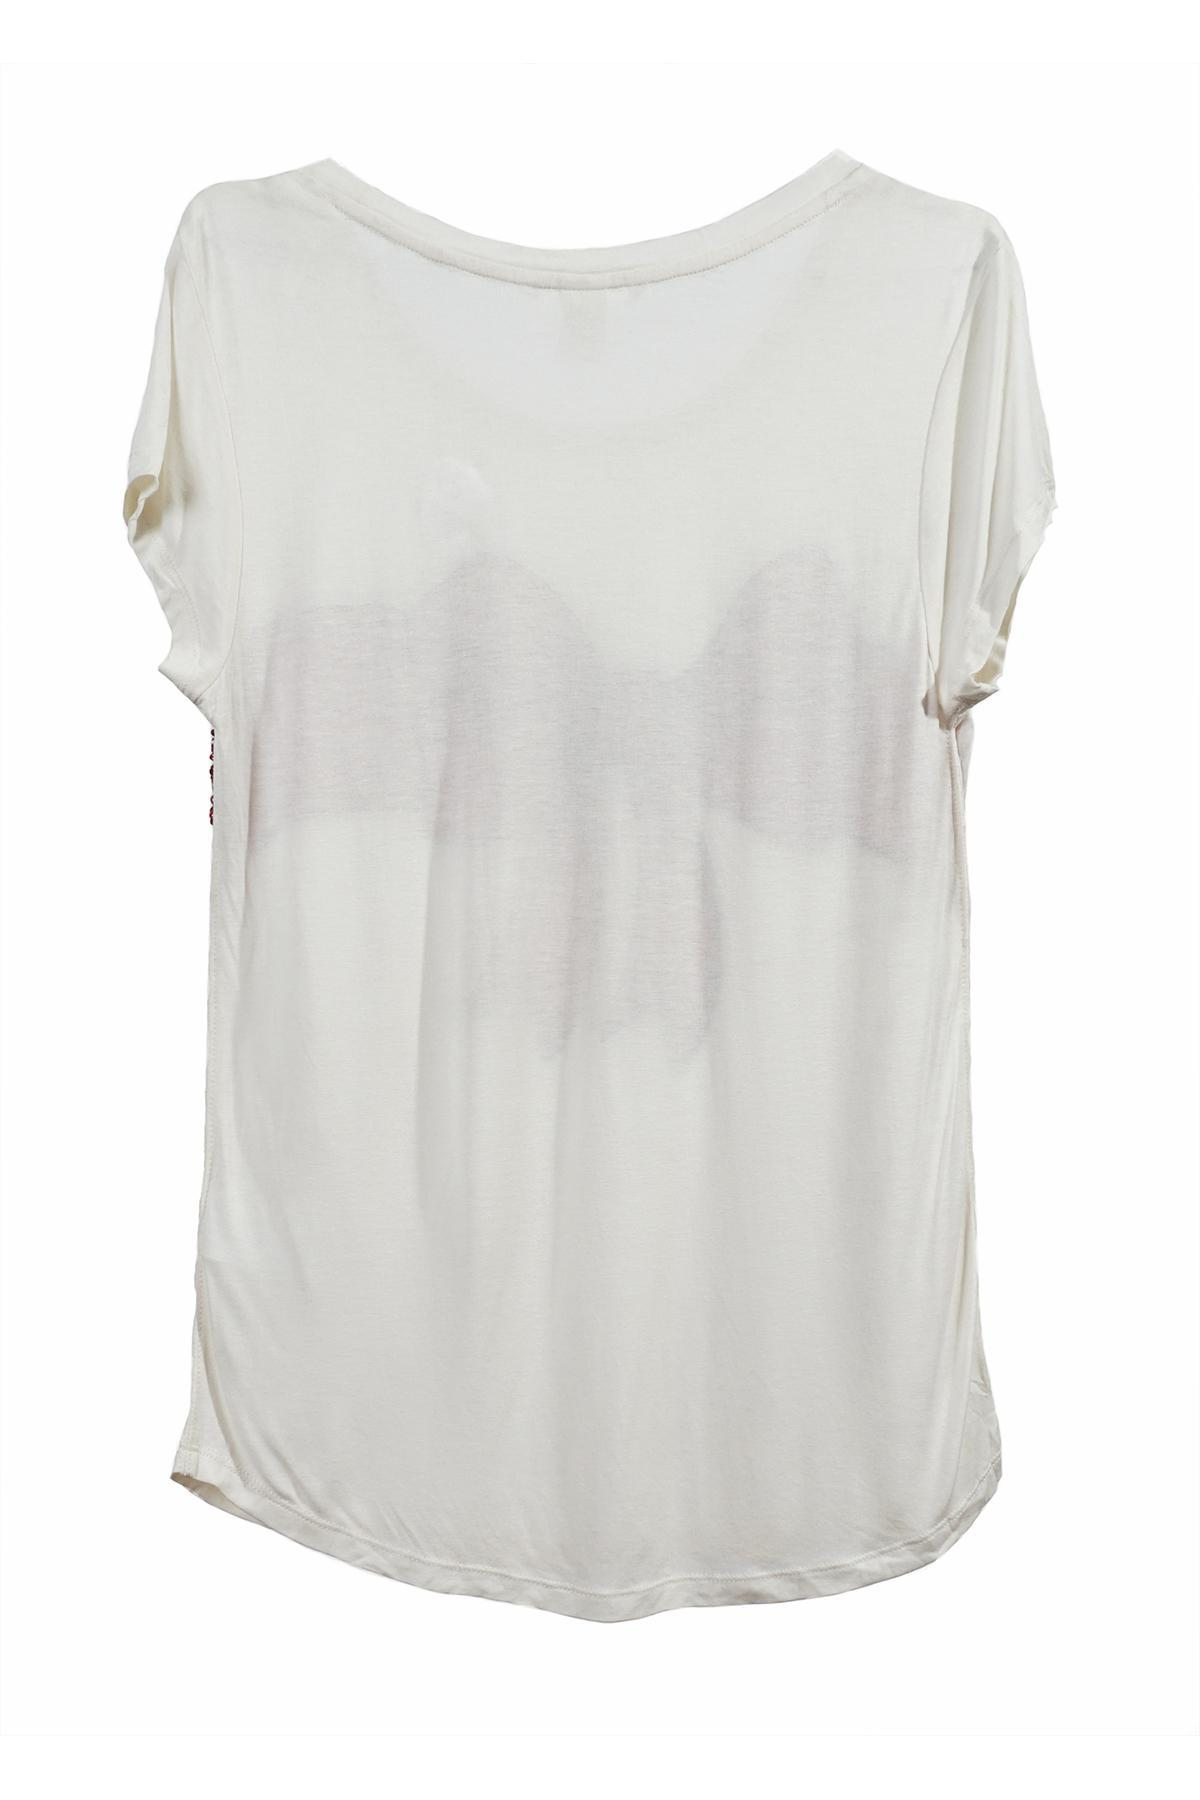 buy, t-shirt, h&m, women's, 020620191119, white, color, Kyiv, deliver, Ukraine, price from 6.94 $